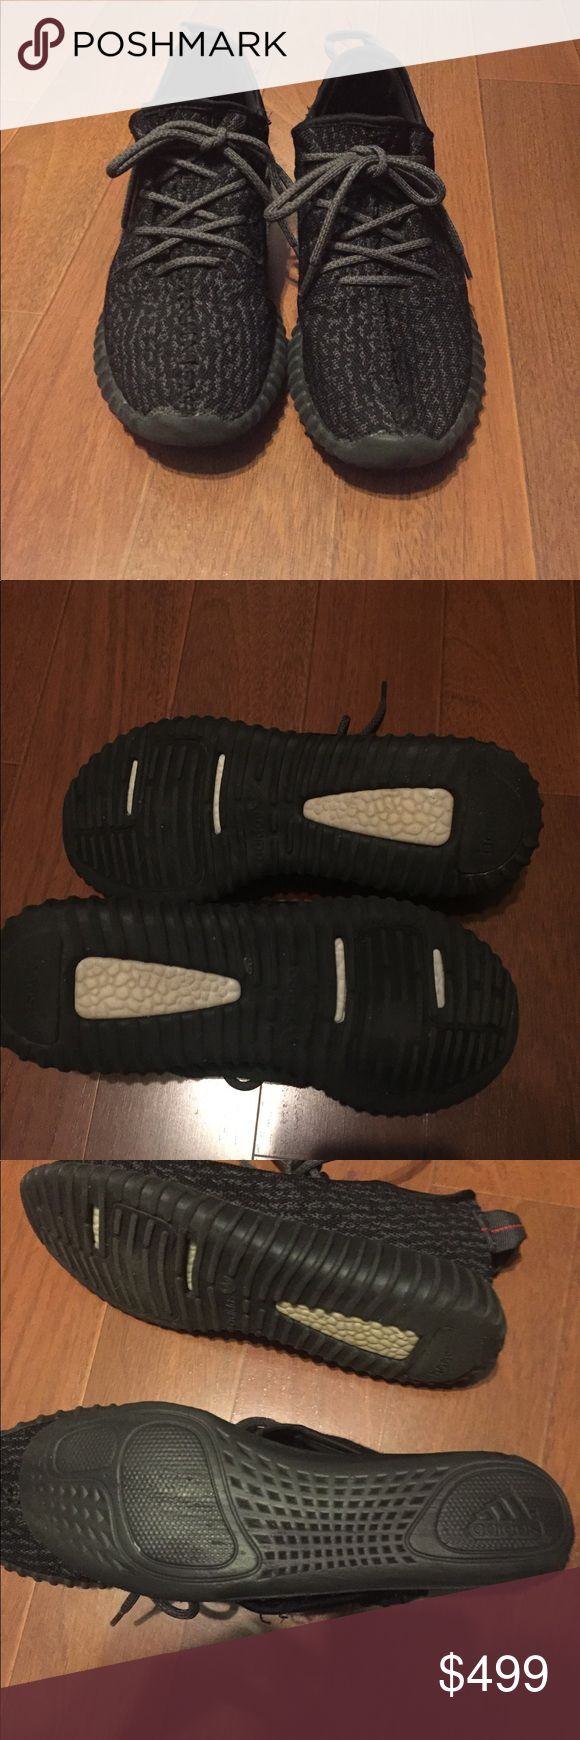 Adidas Yeezy Boost 350 Pirate Black Size 9.5 Authentic Adidas Yeezy Boost 350 Pirate Black Size 9.5 Pre-Owned Yeezy Shoes Athletic Shoes